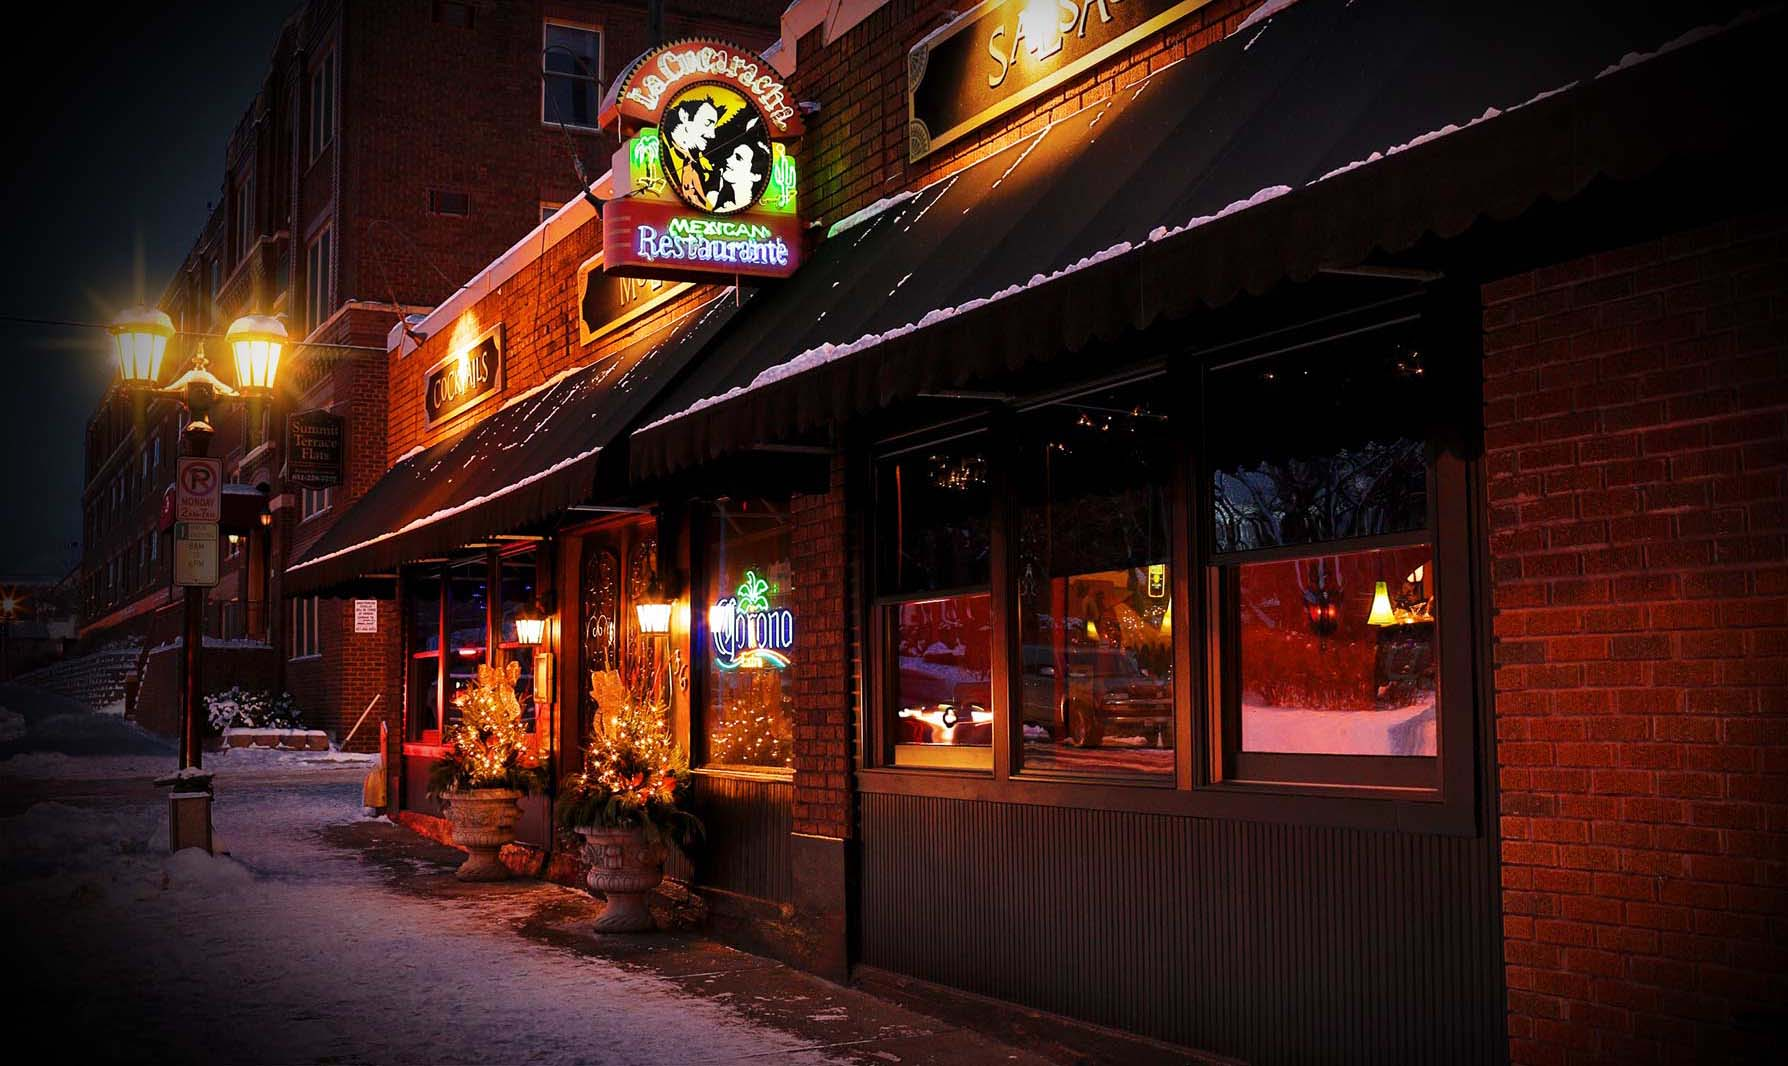 La Cucaracha Is An Award Winning Mexican Restaurant Located In The Historic Crocus Hill Area At Dale And Grand Ave St Paul Minnesota